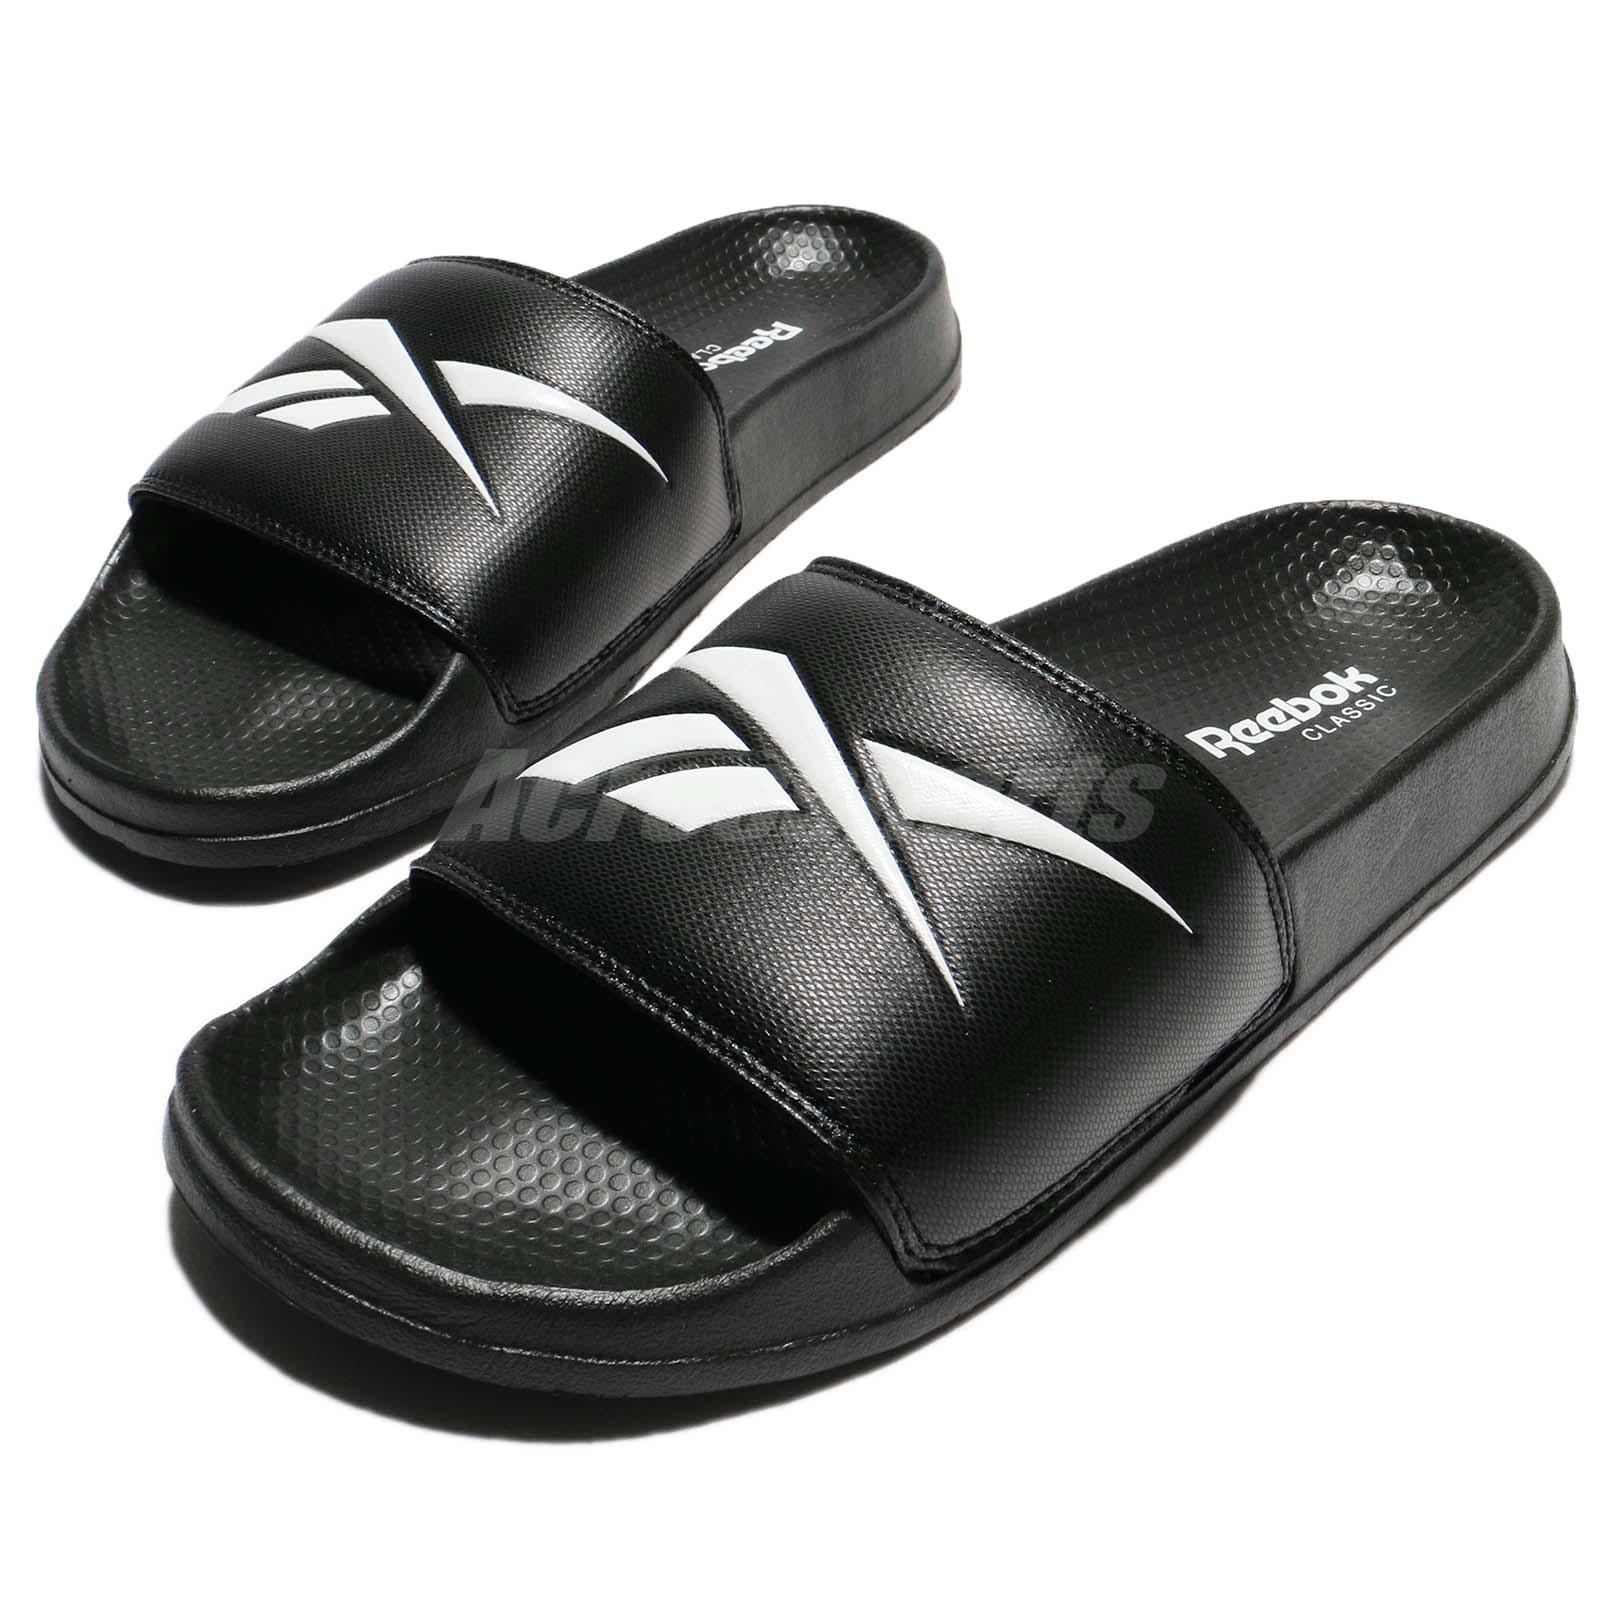 7a282d768 Details about Reebok Classic Slide Black White Big Logo Men Women Sports Sandal  Slipper CN0212